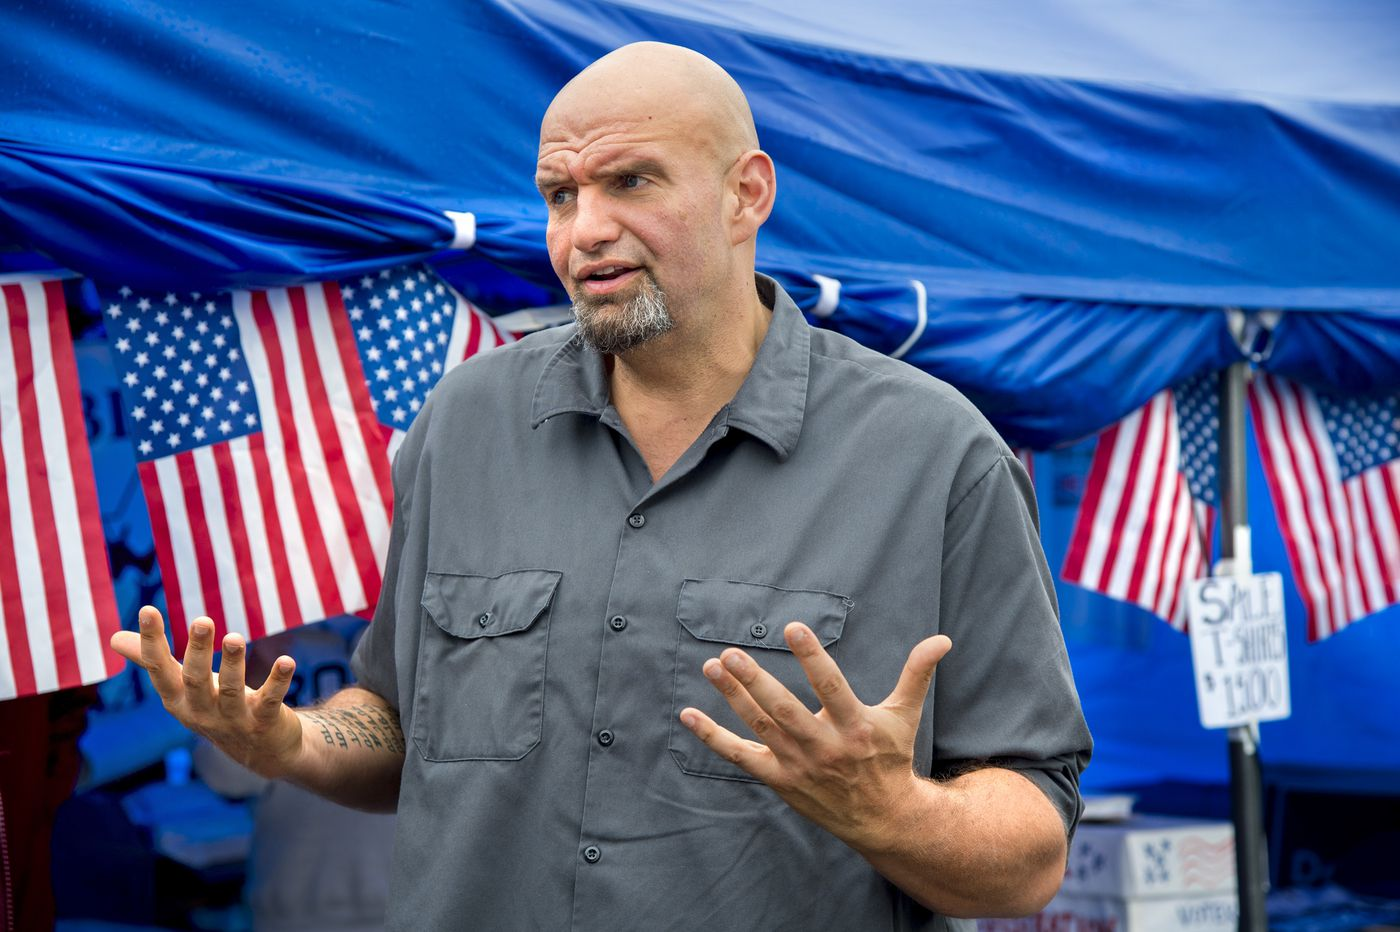 Lt. Gov. Fetterman's weed tour takes some hits | John Baer